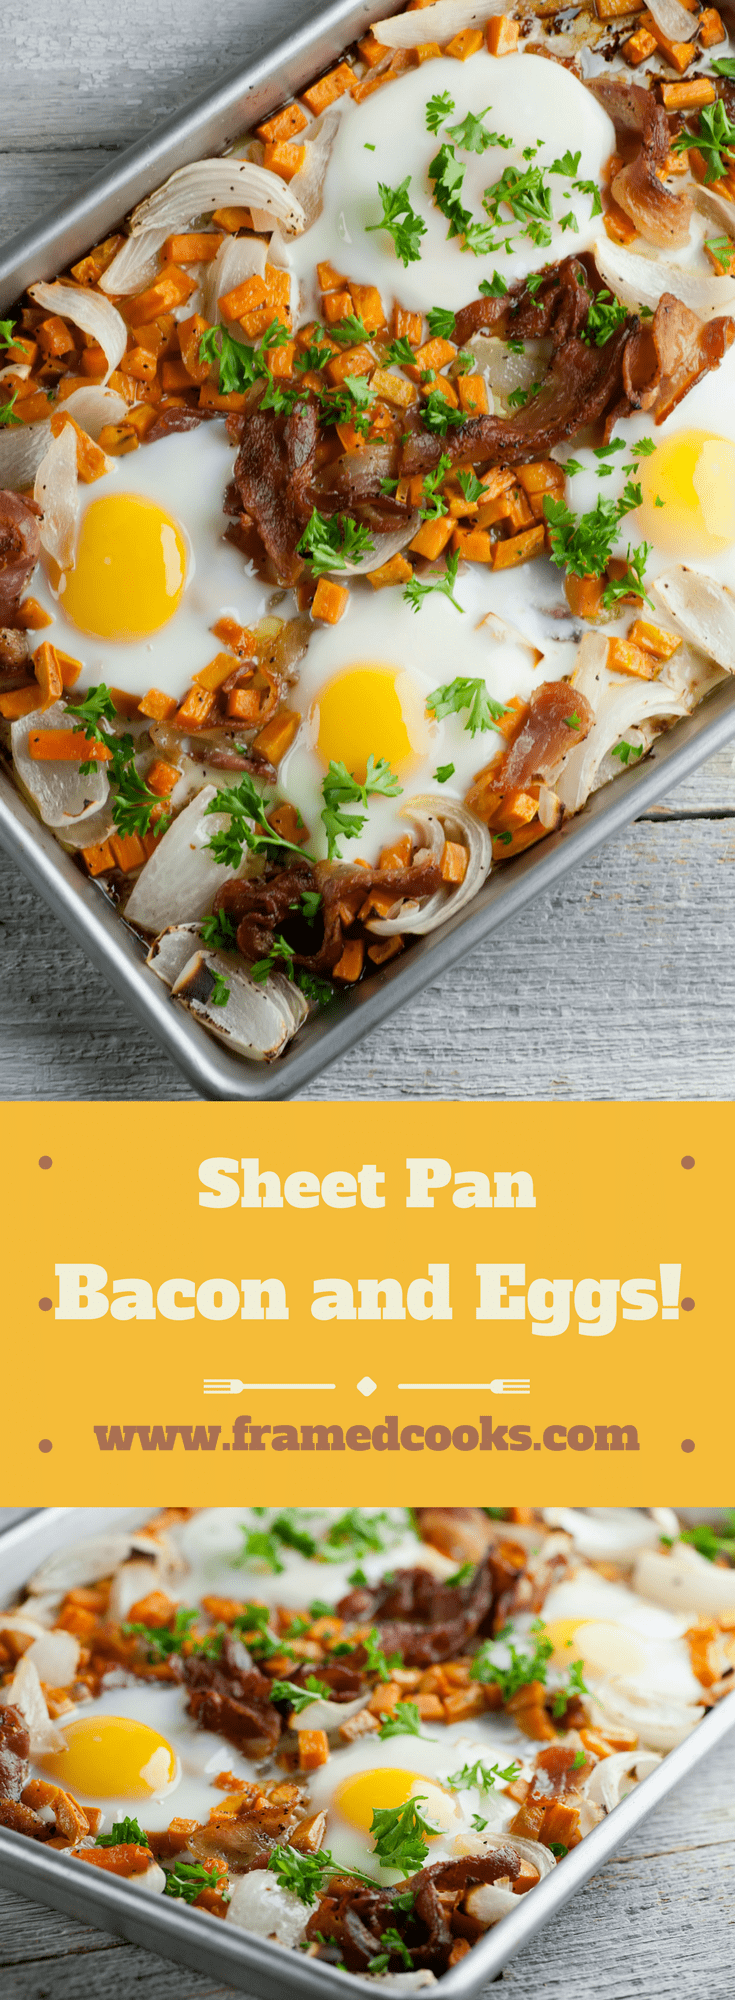 This easy recipe for sheet pan bacon and eggs is a great way to fix breakfast or brunch for a crowd.  The sweet potatoes and onions round out this healthy meal.